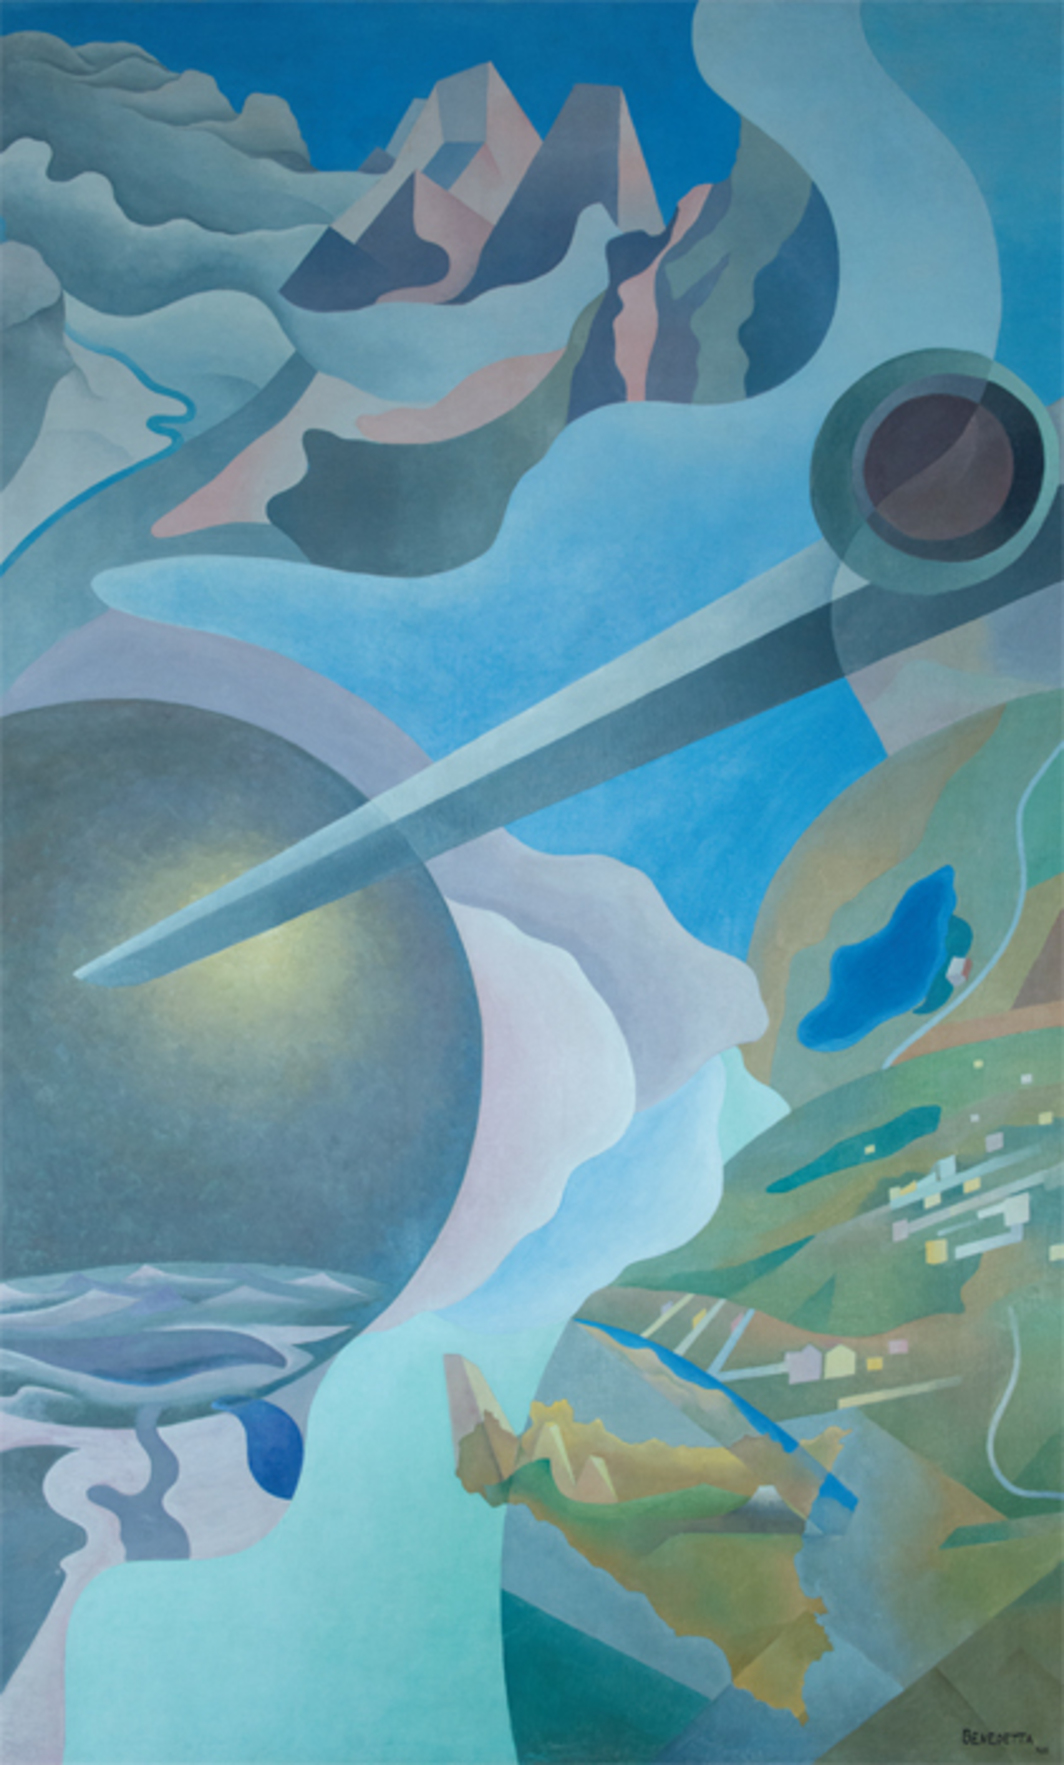 "Benedetta, Sintesi delle comunicazioni aeree (Synthesis of Aerial Communications), 1933–34, tempera and encaustic on canvas, 10' 7 1/2"" x 6' 6 3/8"". From ""Italian Futurism, 1909–1944: Reconstructing the Universe."""